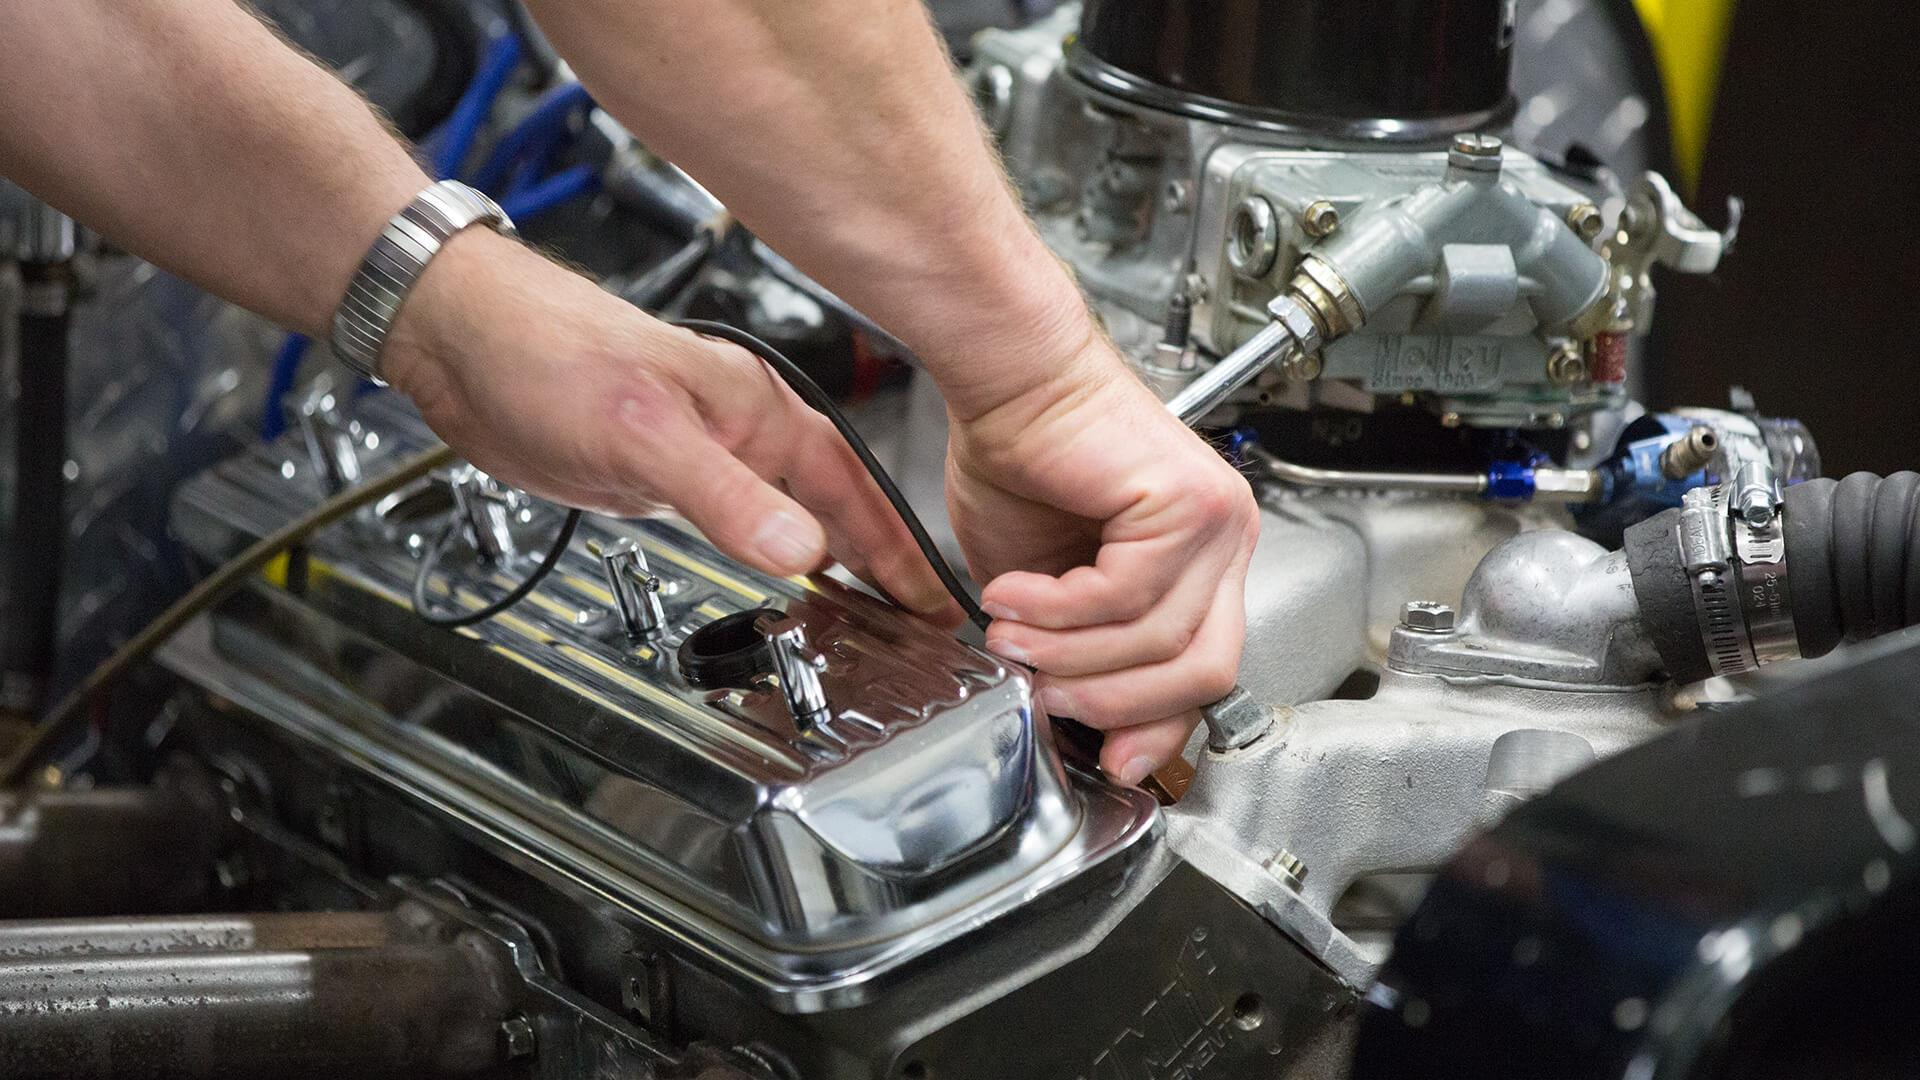 Students hands working on an engine